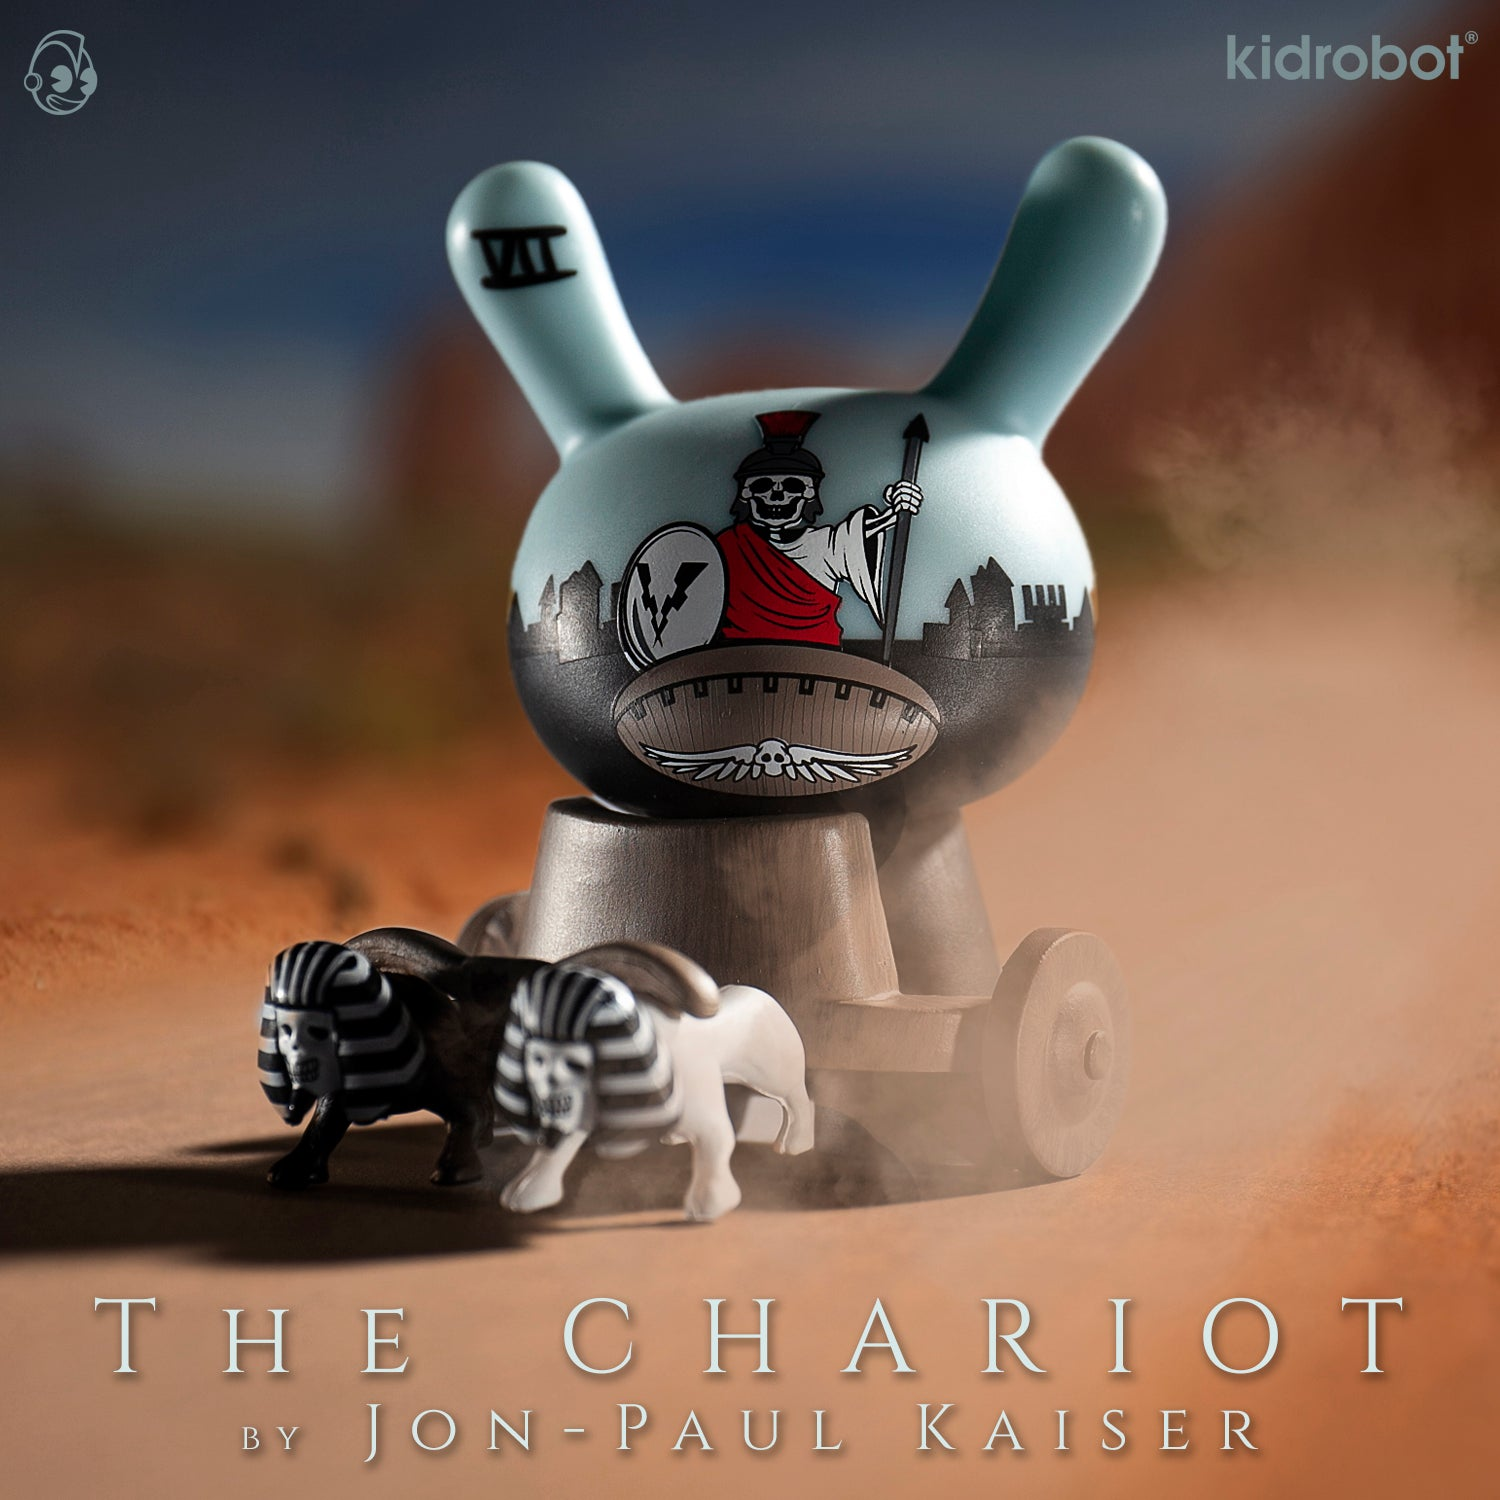 The Chariot Dunny by Jon-Paul Kaiser - Arcane Divination The Lost Cards - Kidrobot